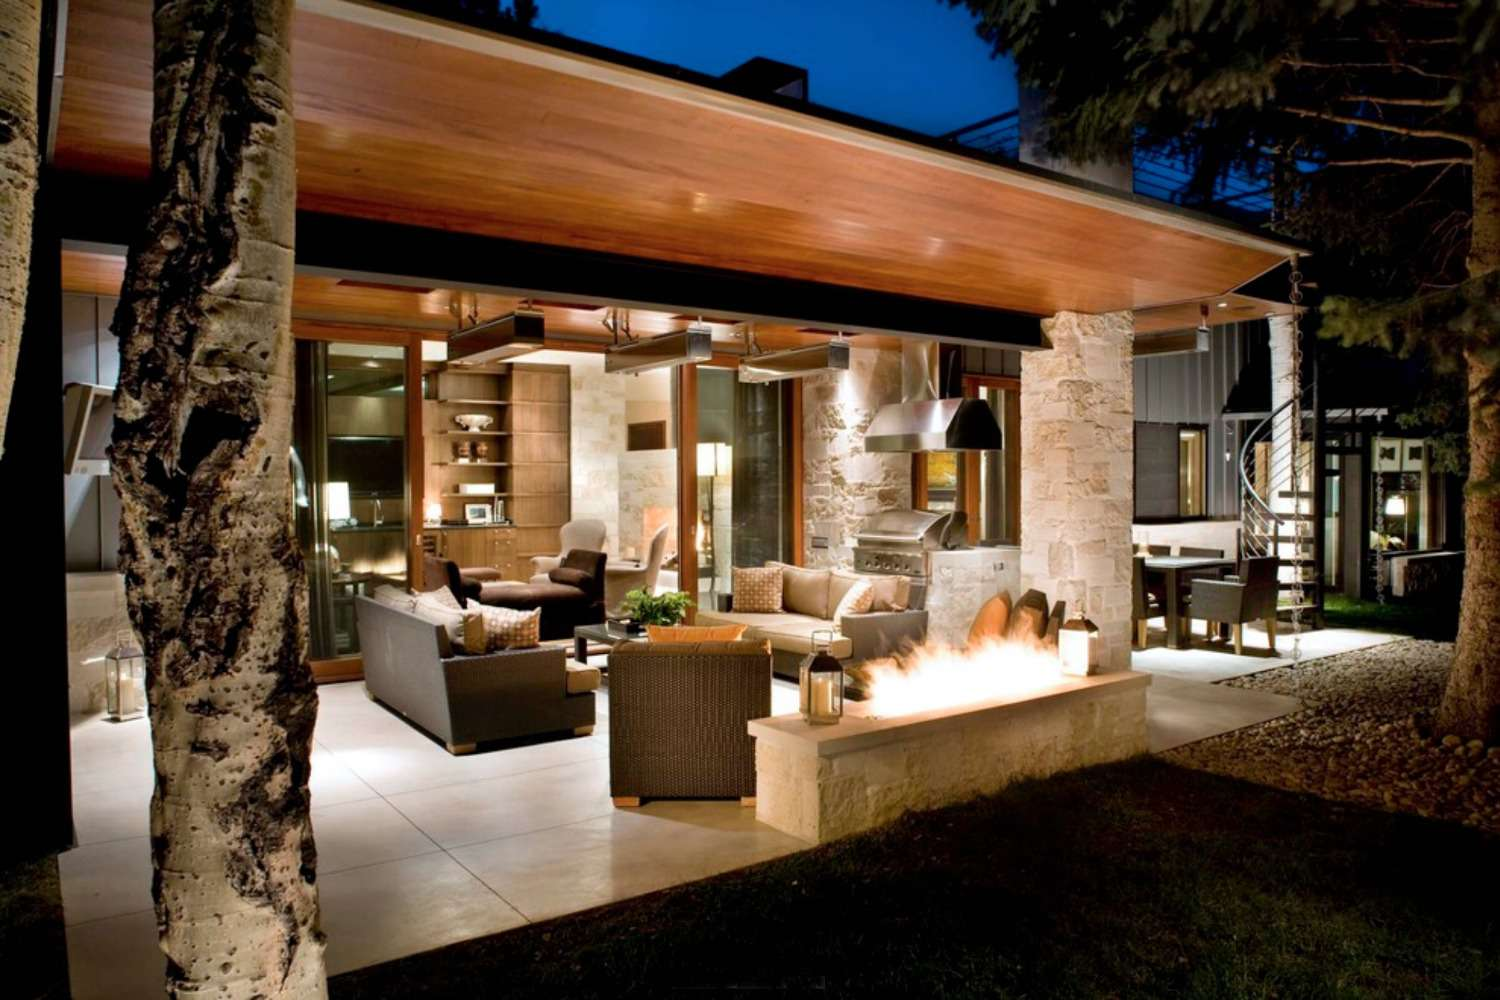 50 Stylish Covered Patio Ideas,Graphic Design Sketchbook Layout